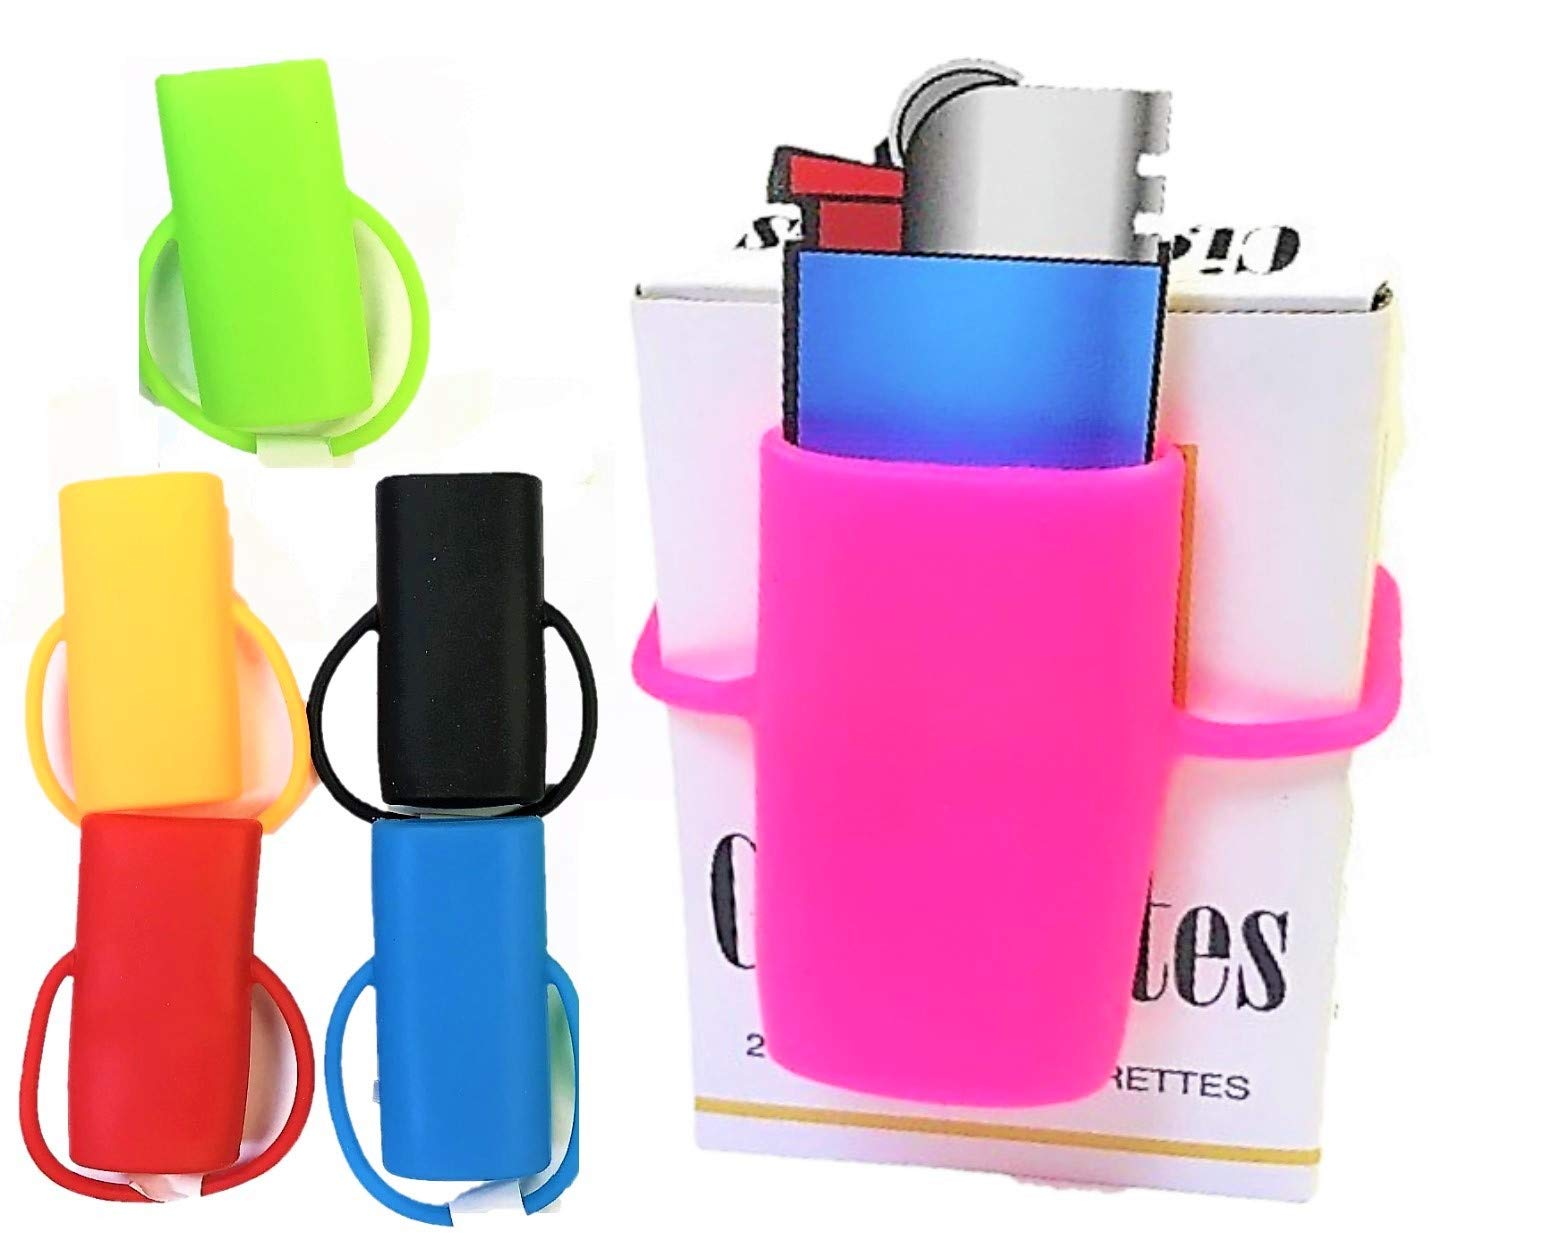 3ct Bright 100% Silicone Rubber Lighter Cigarette Case Bands, Fits Bic Style